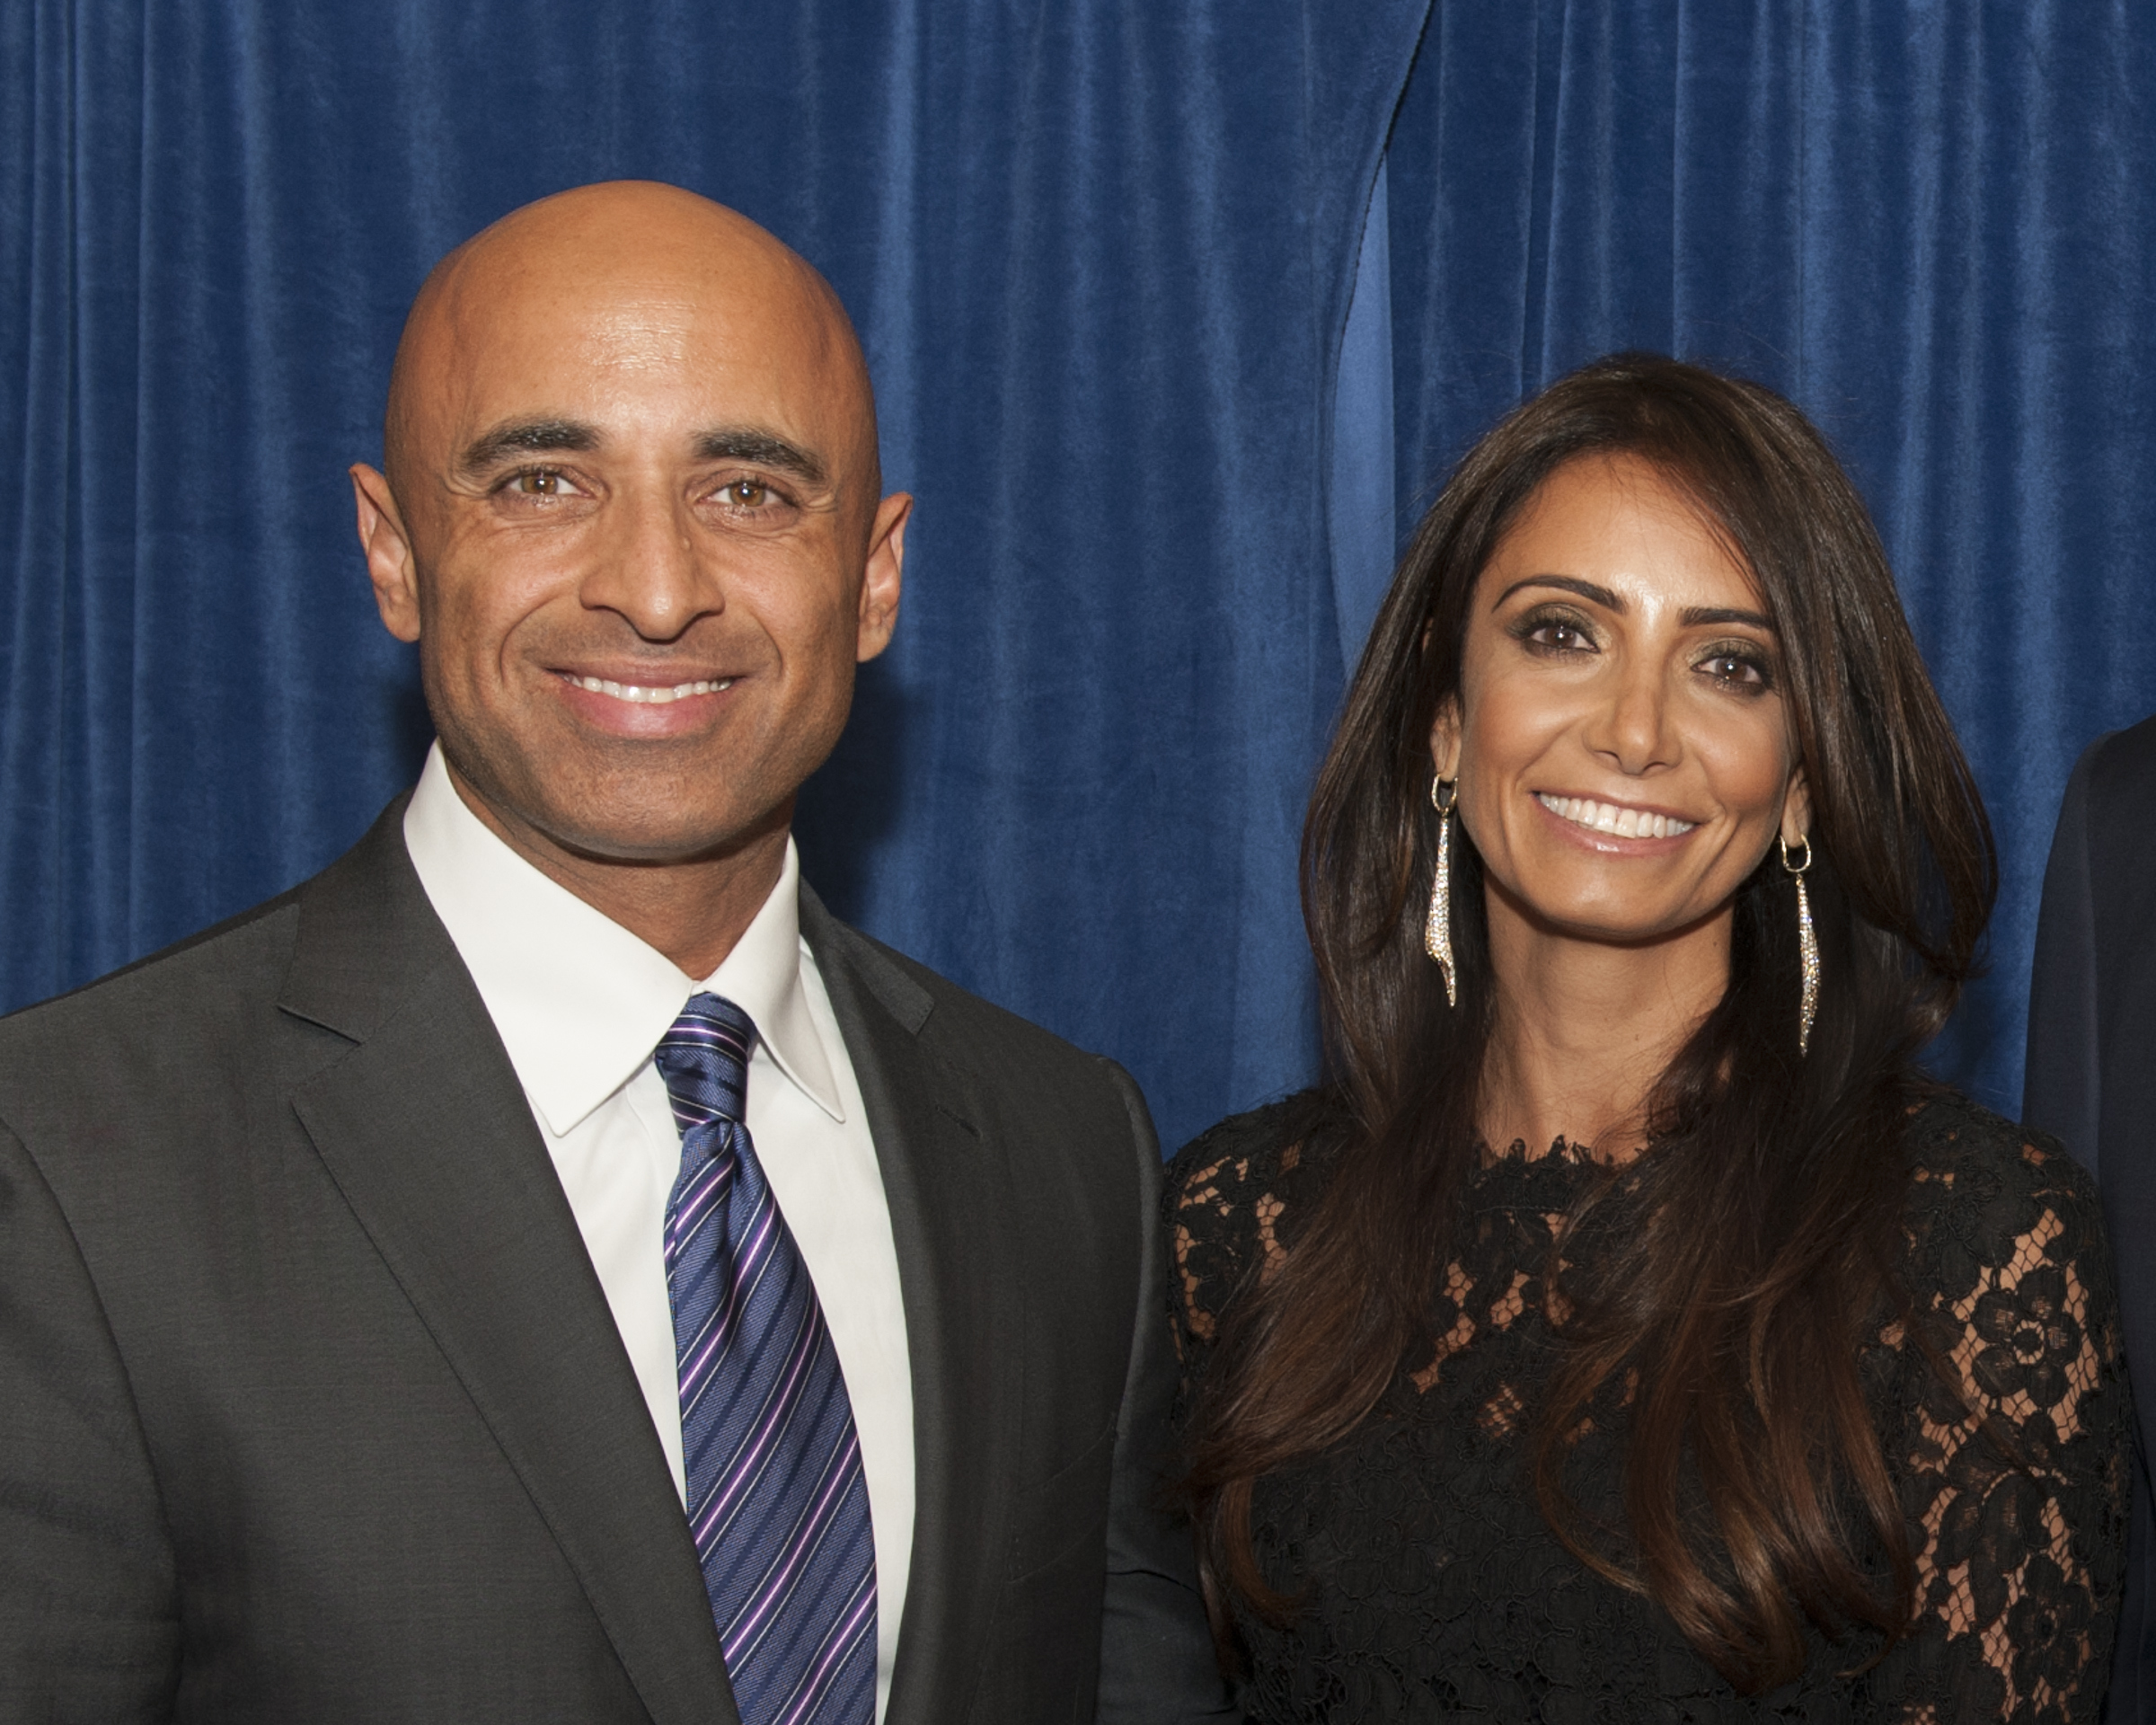 His Excellency Yousef Al Otaiba, UAE Ambassador to the United States, and his wife, Abeer